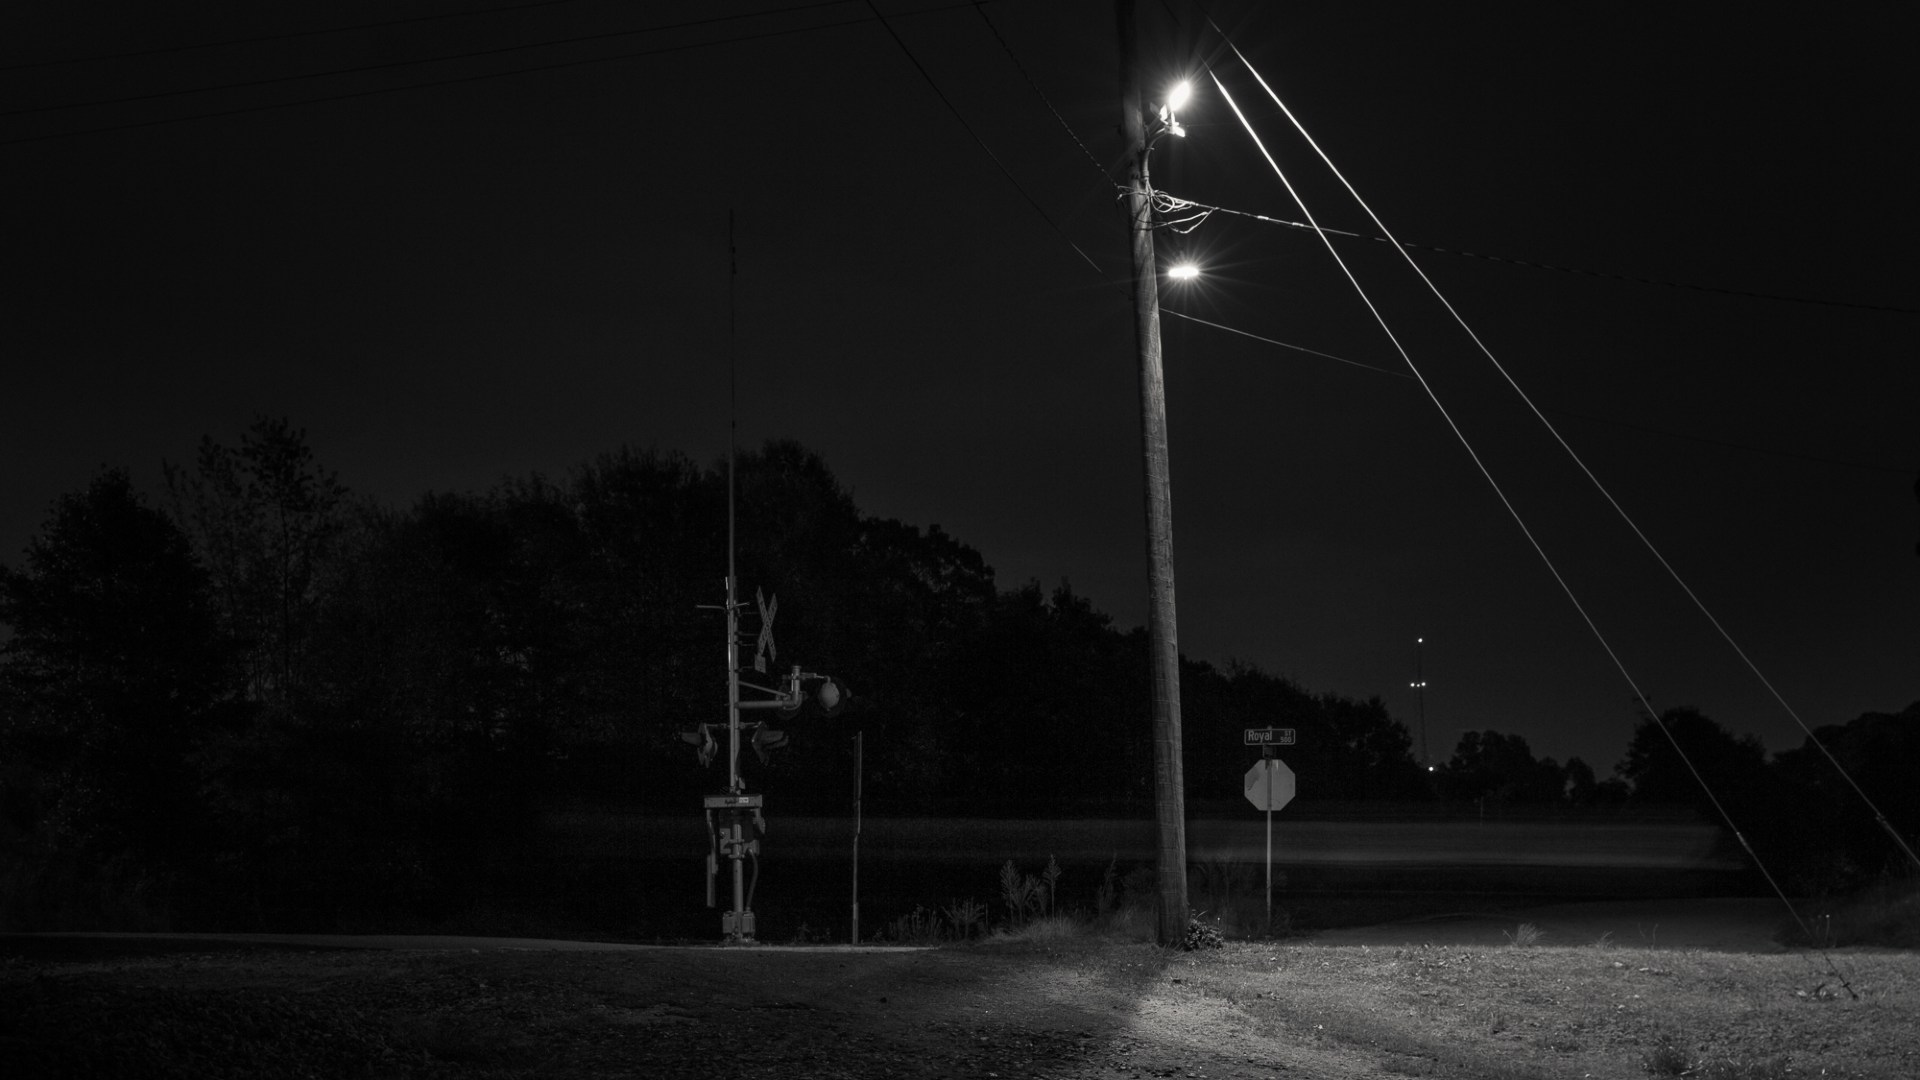 A black and white photograph of a street light and street sign at night by Adam Bellefeuil